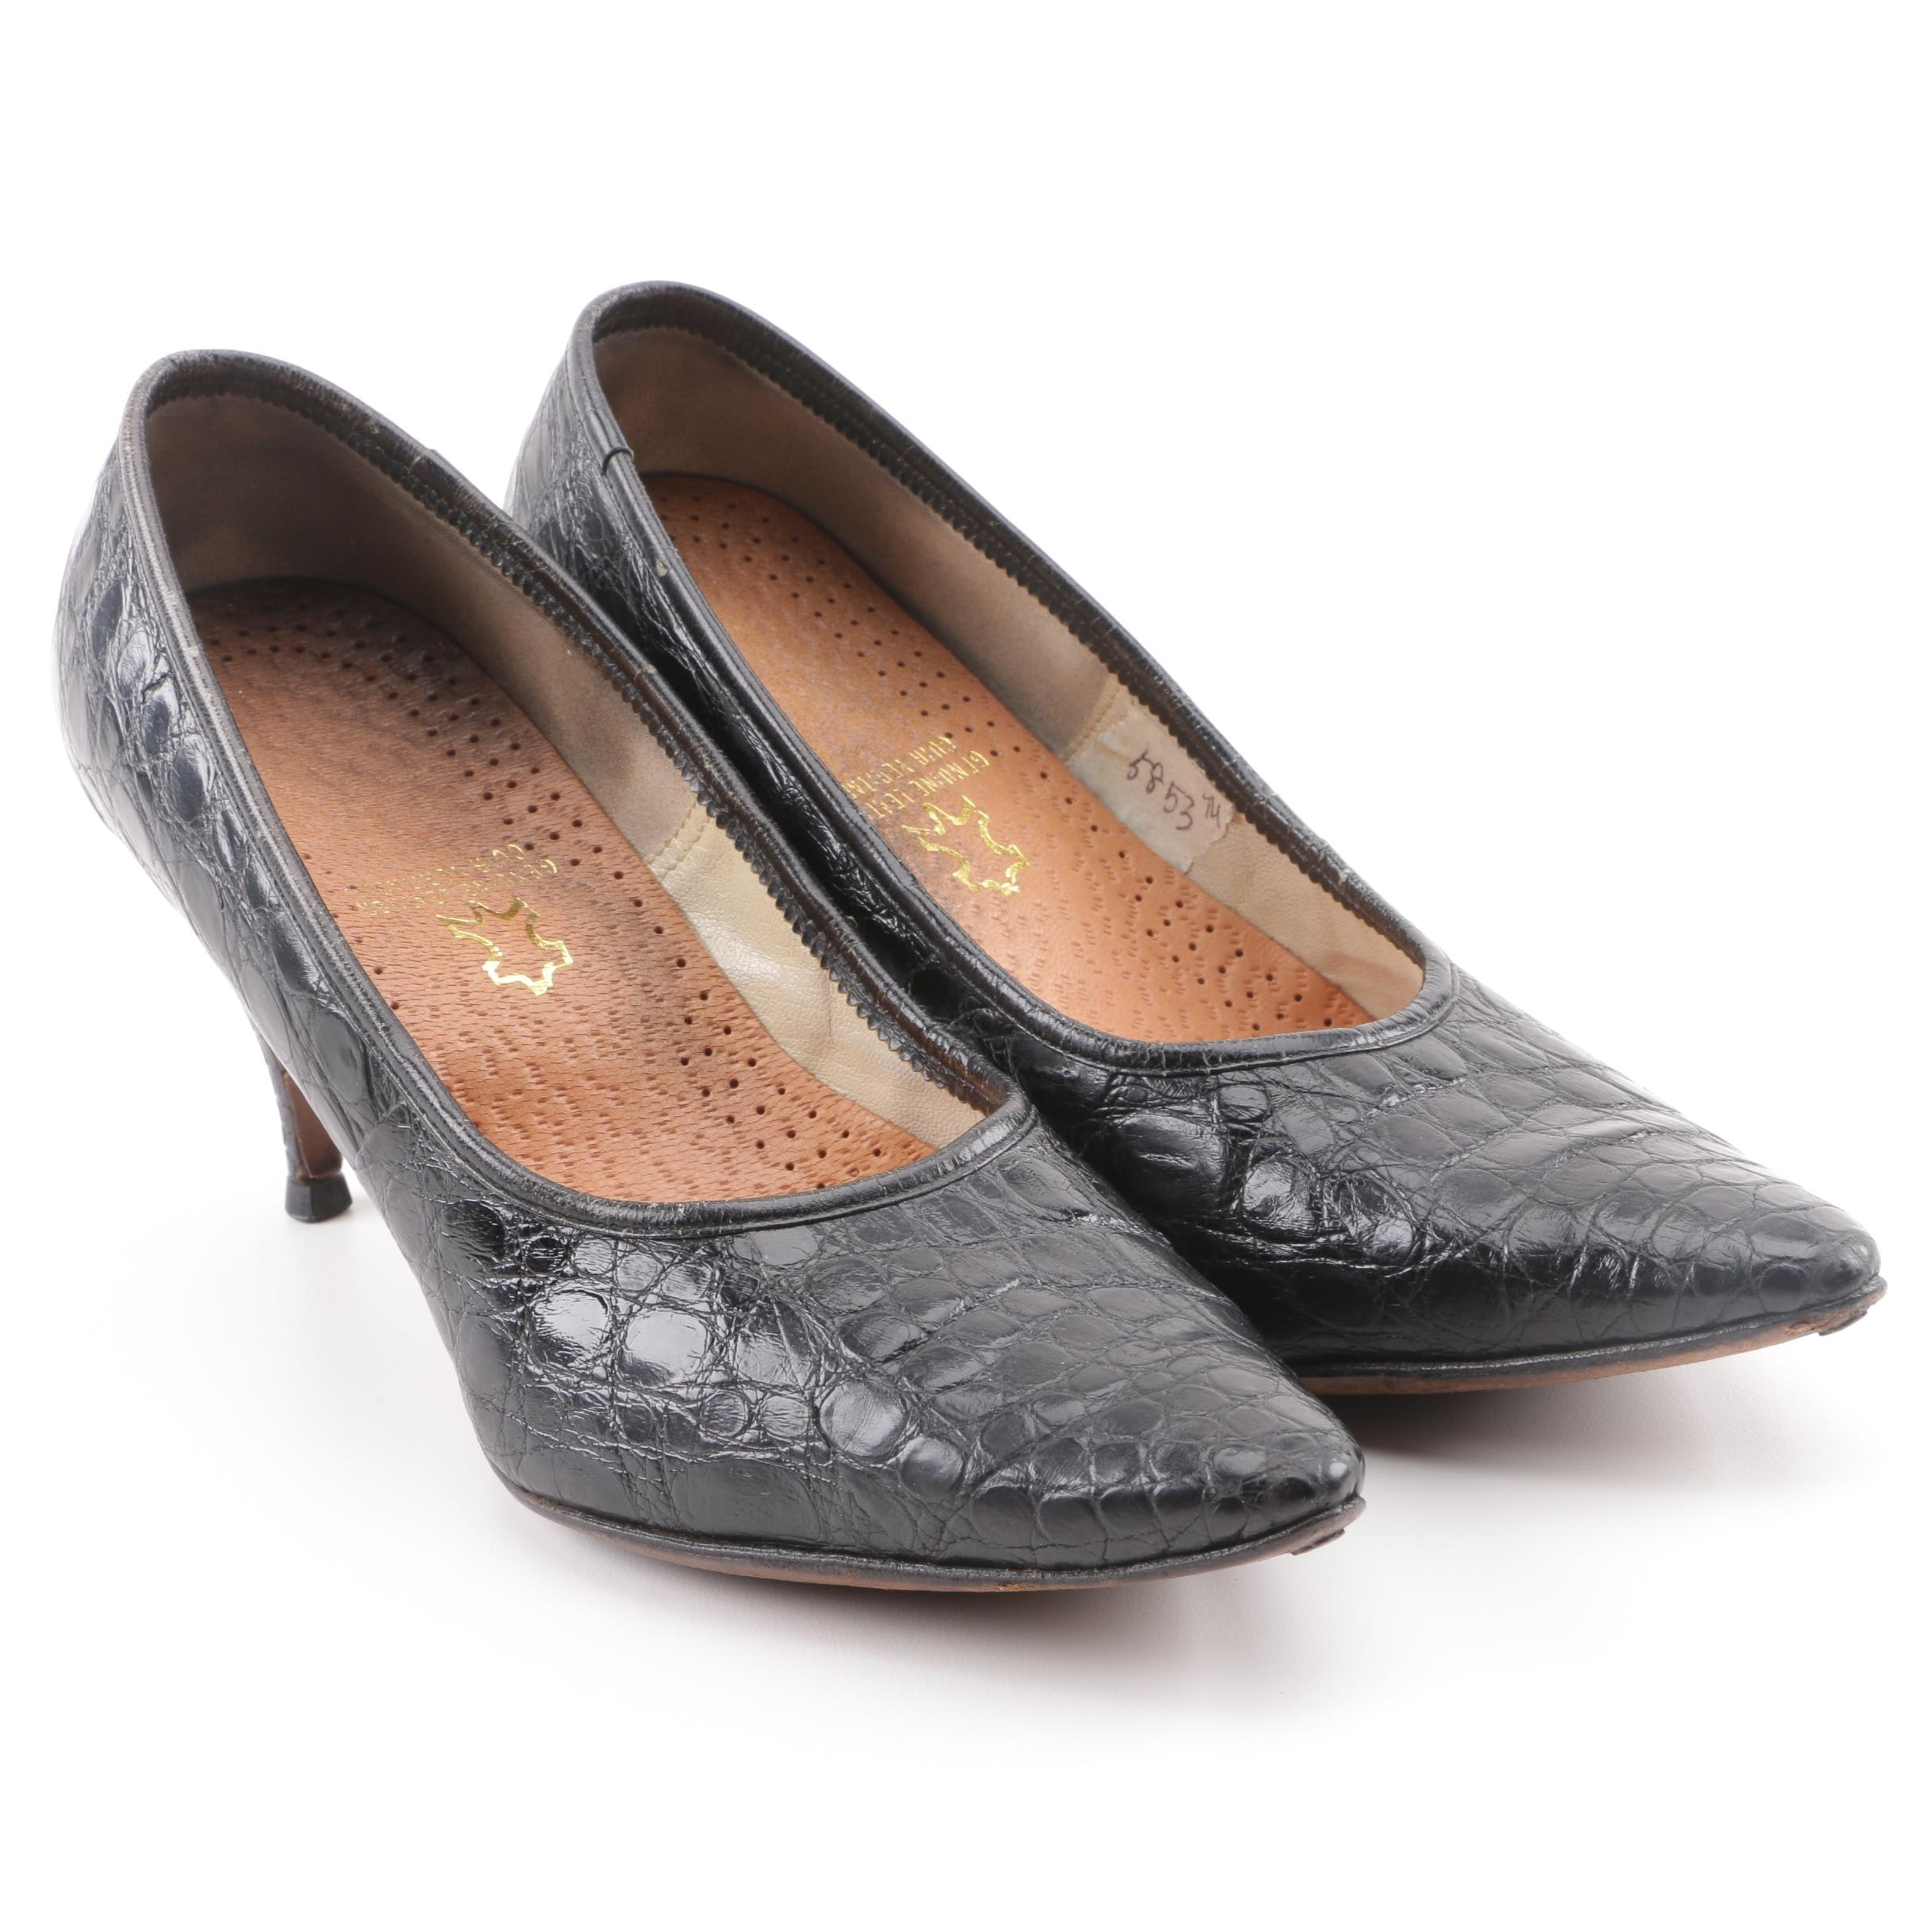 Women's Vintage Alligator Embossed Black Leather Pumps